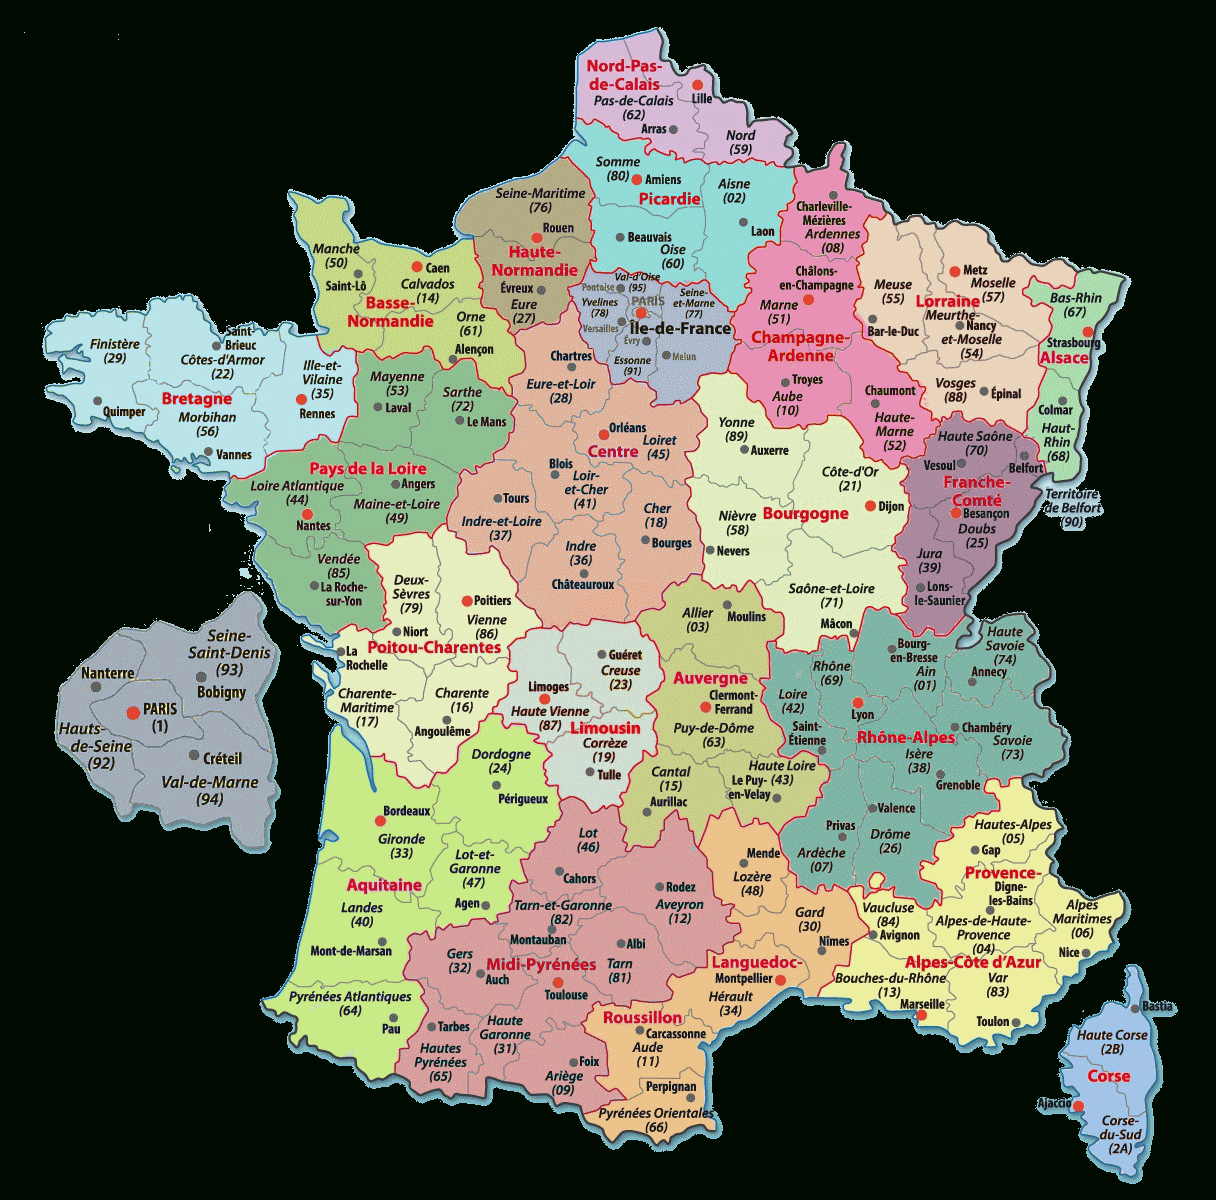 Carte De France Departements : Carte Des Départements De France tout Departement Et Chef Lieu